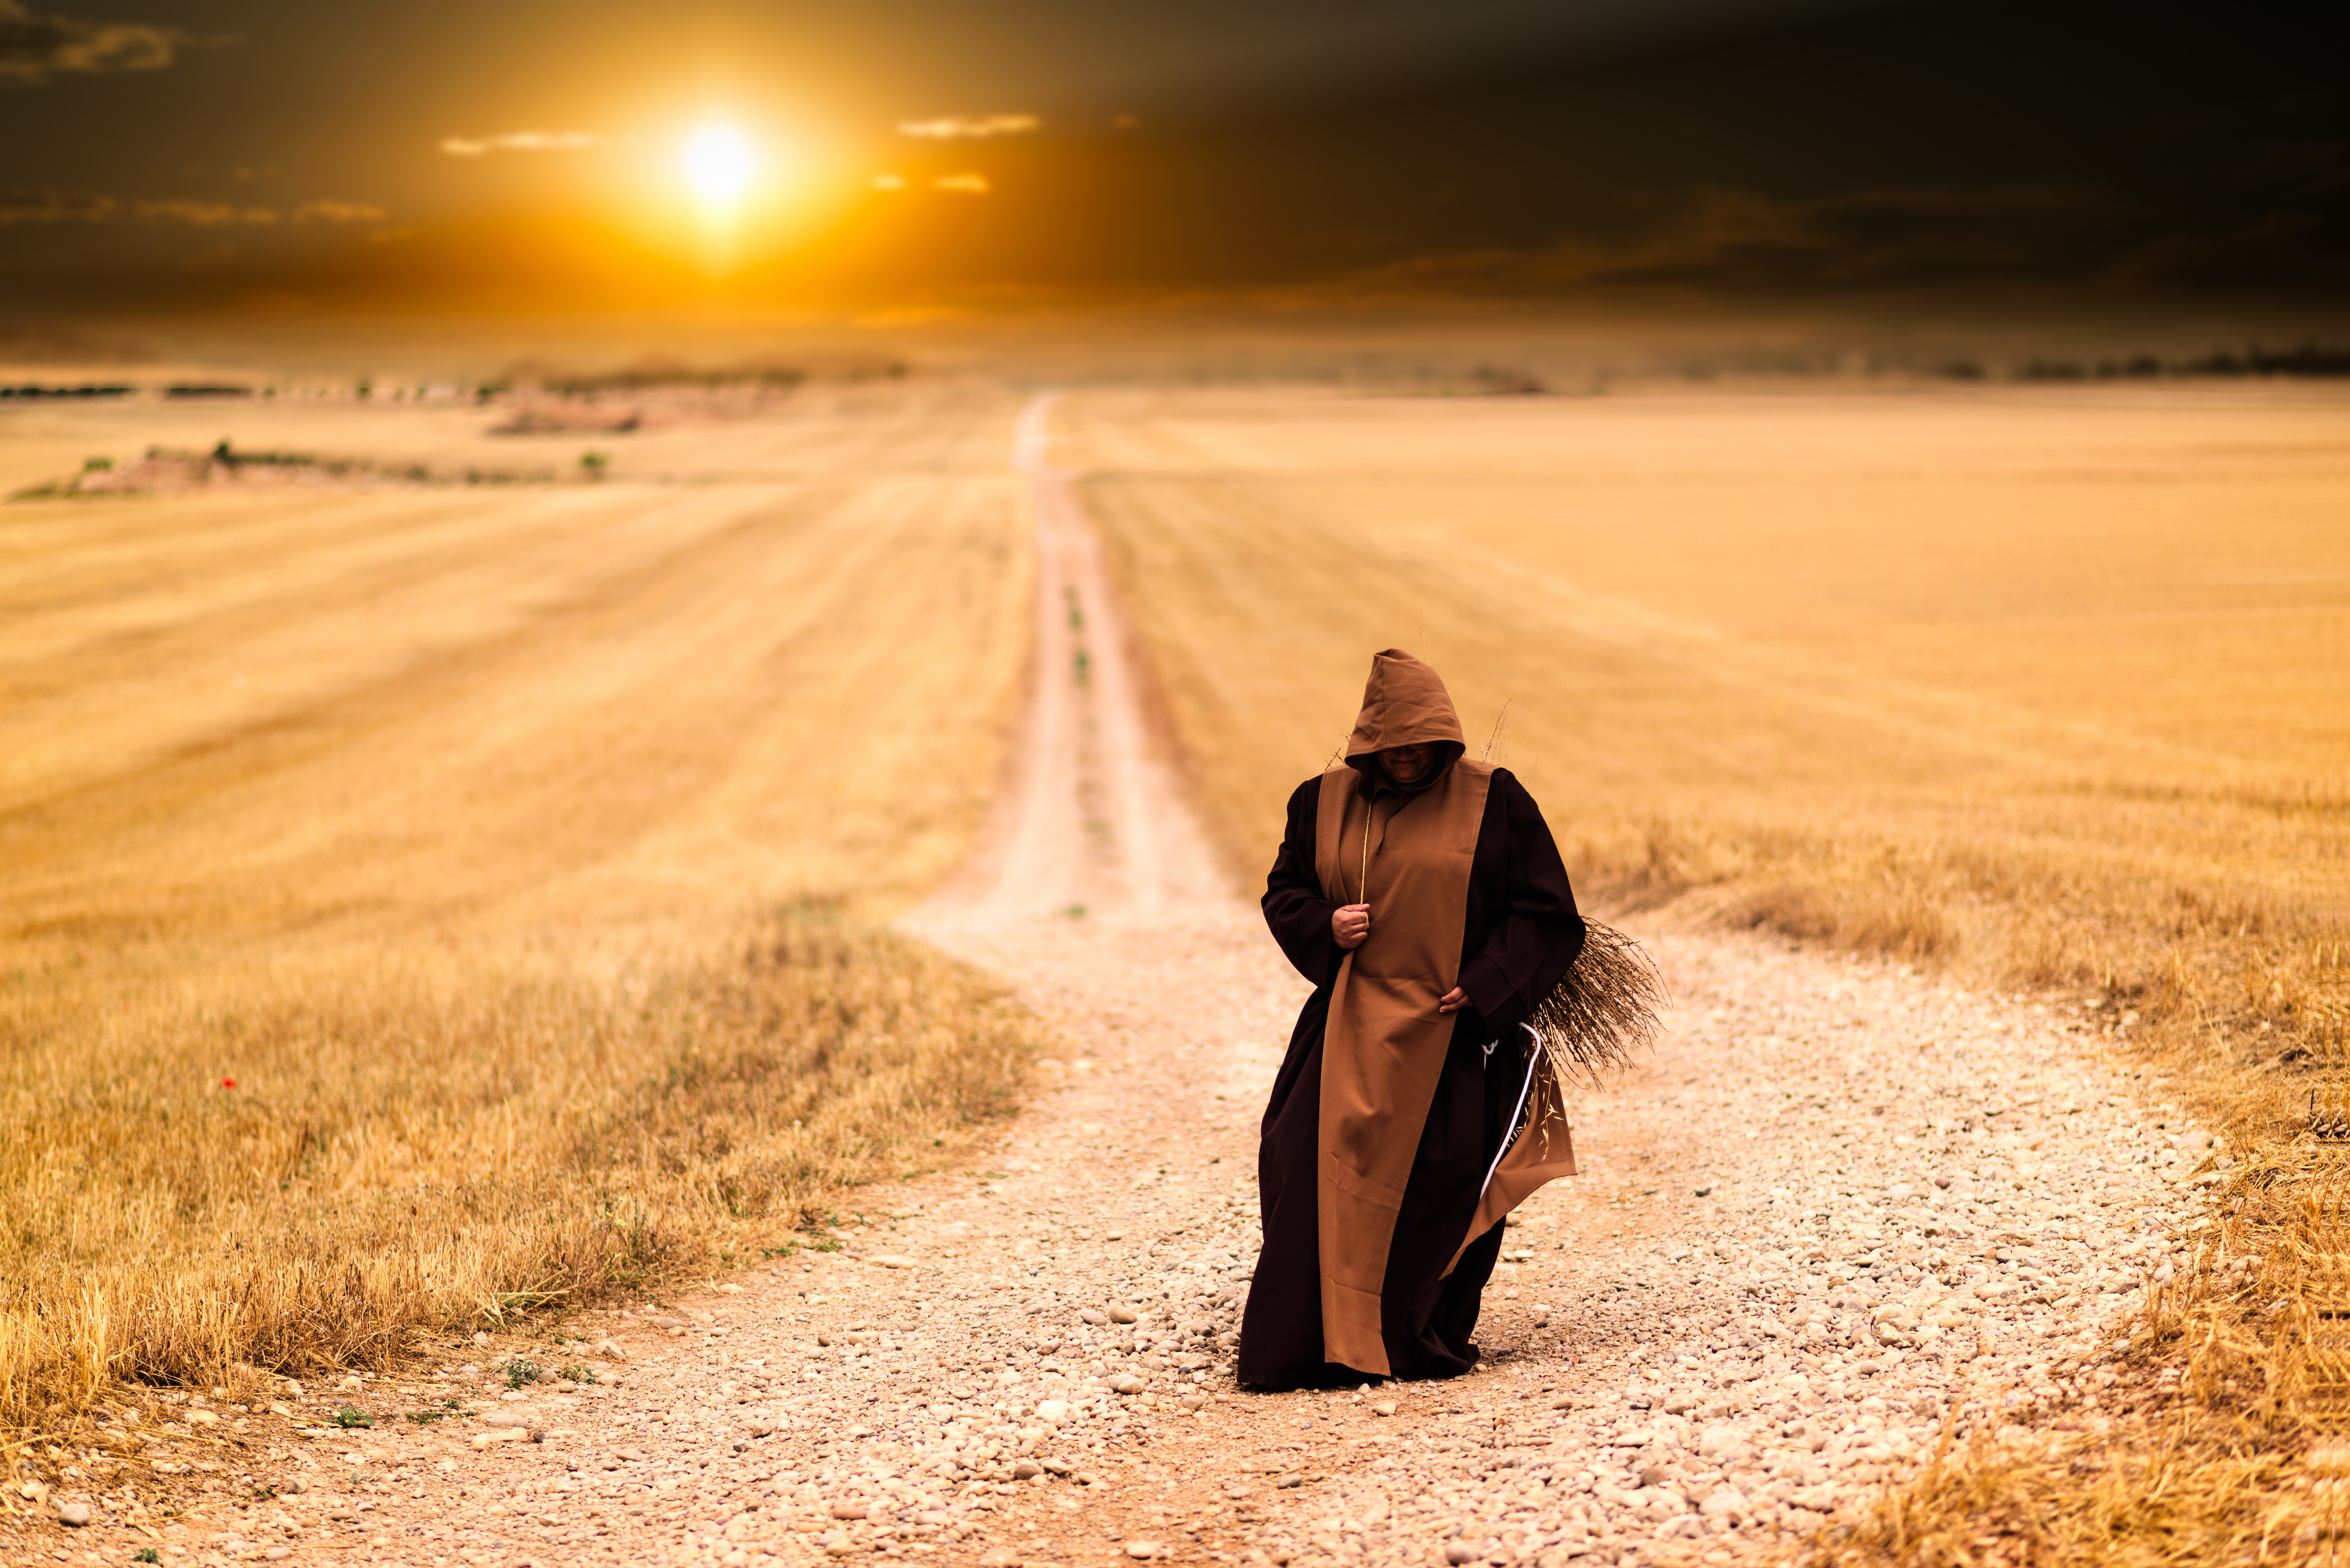 Person in Brown and Black Robe in the Middle of the Road, Afternoon, Farmer, Field, Landscape, HQ Photo